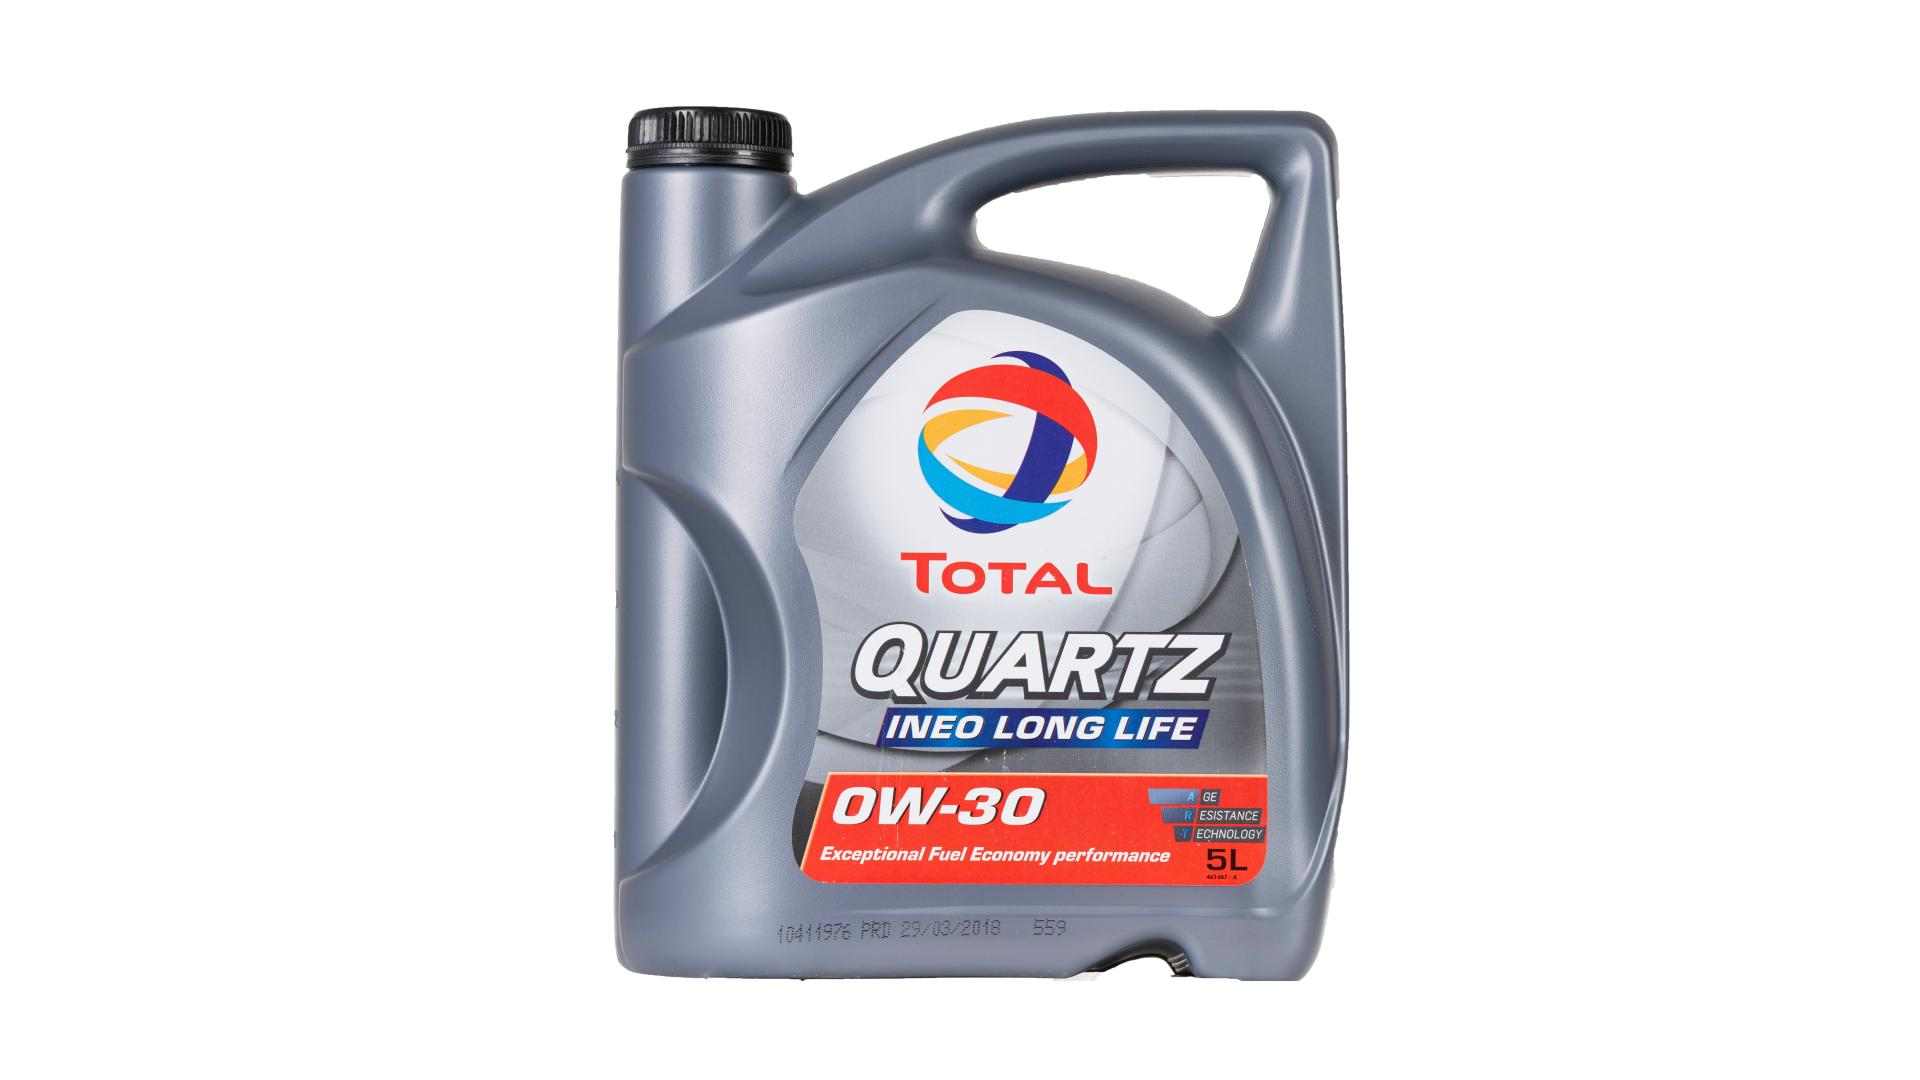 TOTAL 0W-30 INEO LONG LIFE 5L (206717)